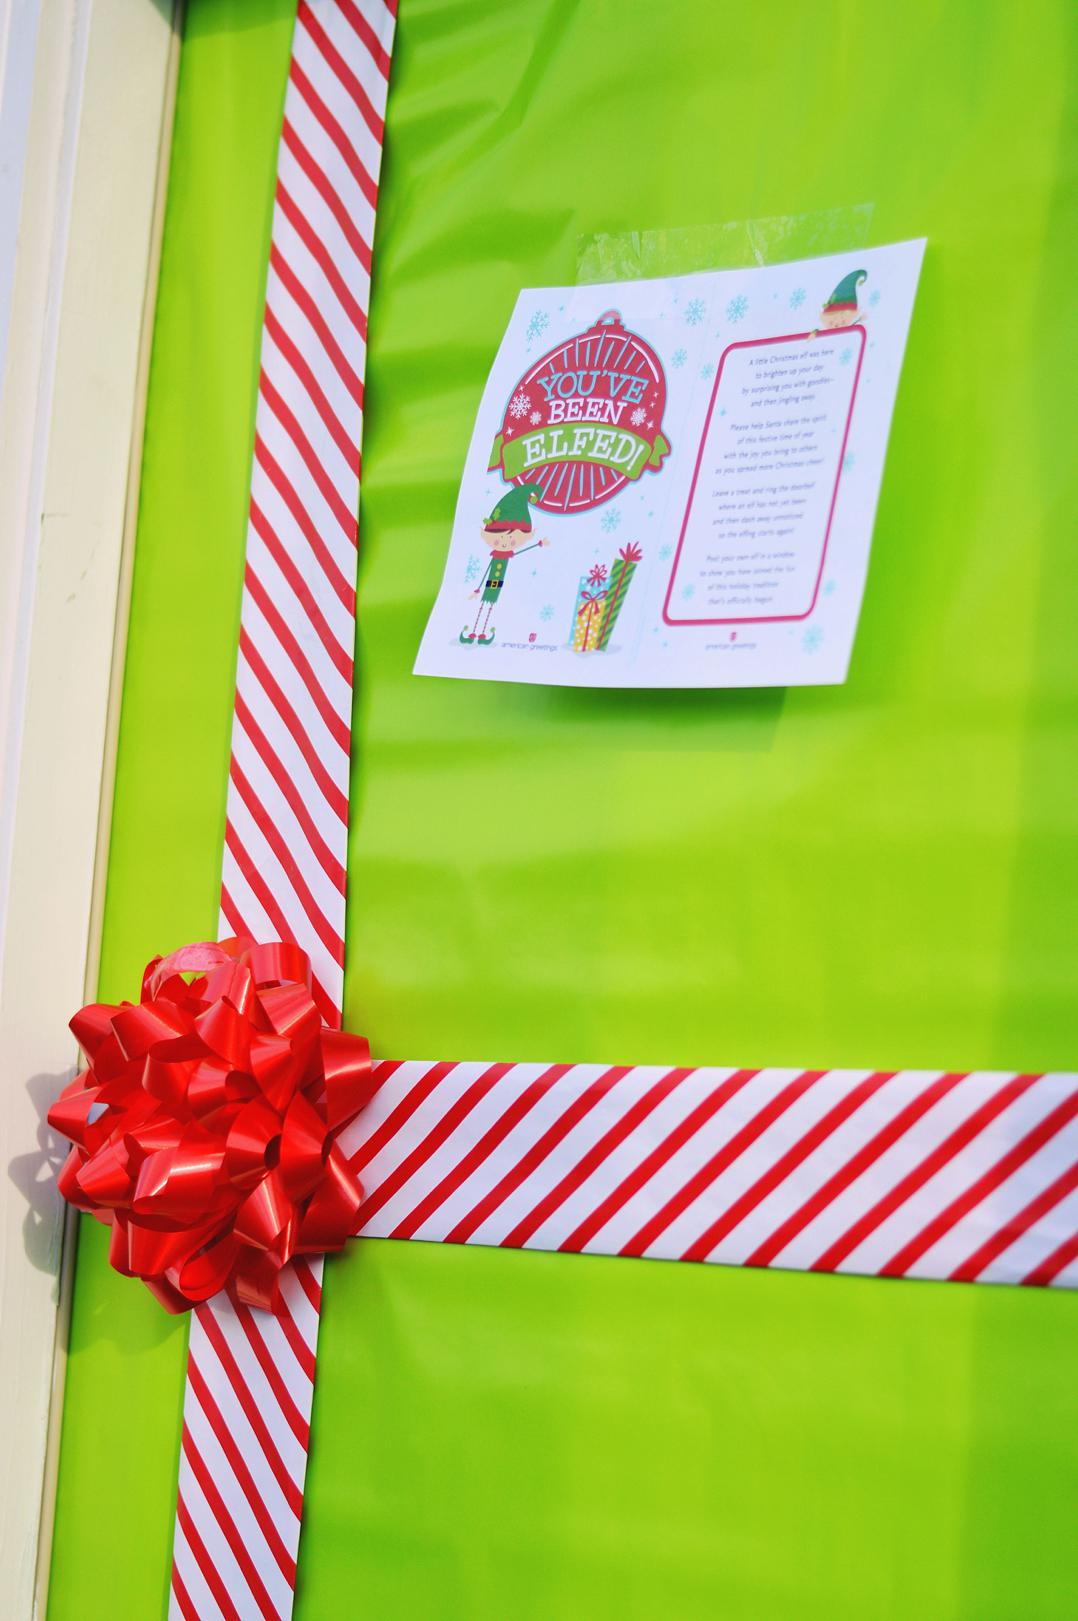 5 Ways To Teach Your Kids To Give At Christmas by Rachael Burgess